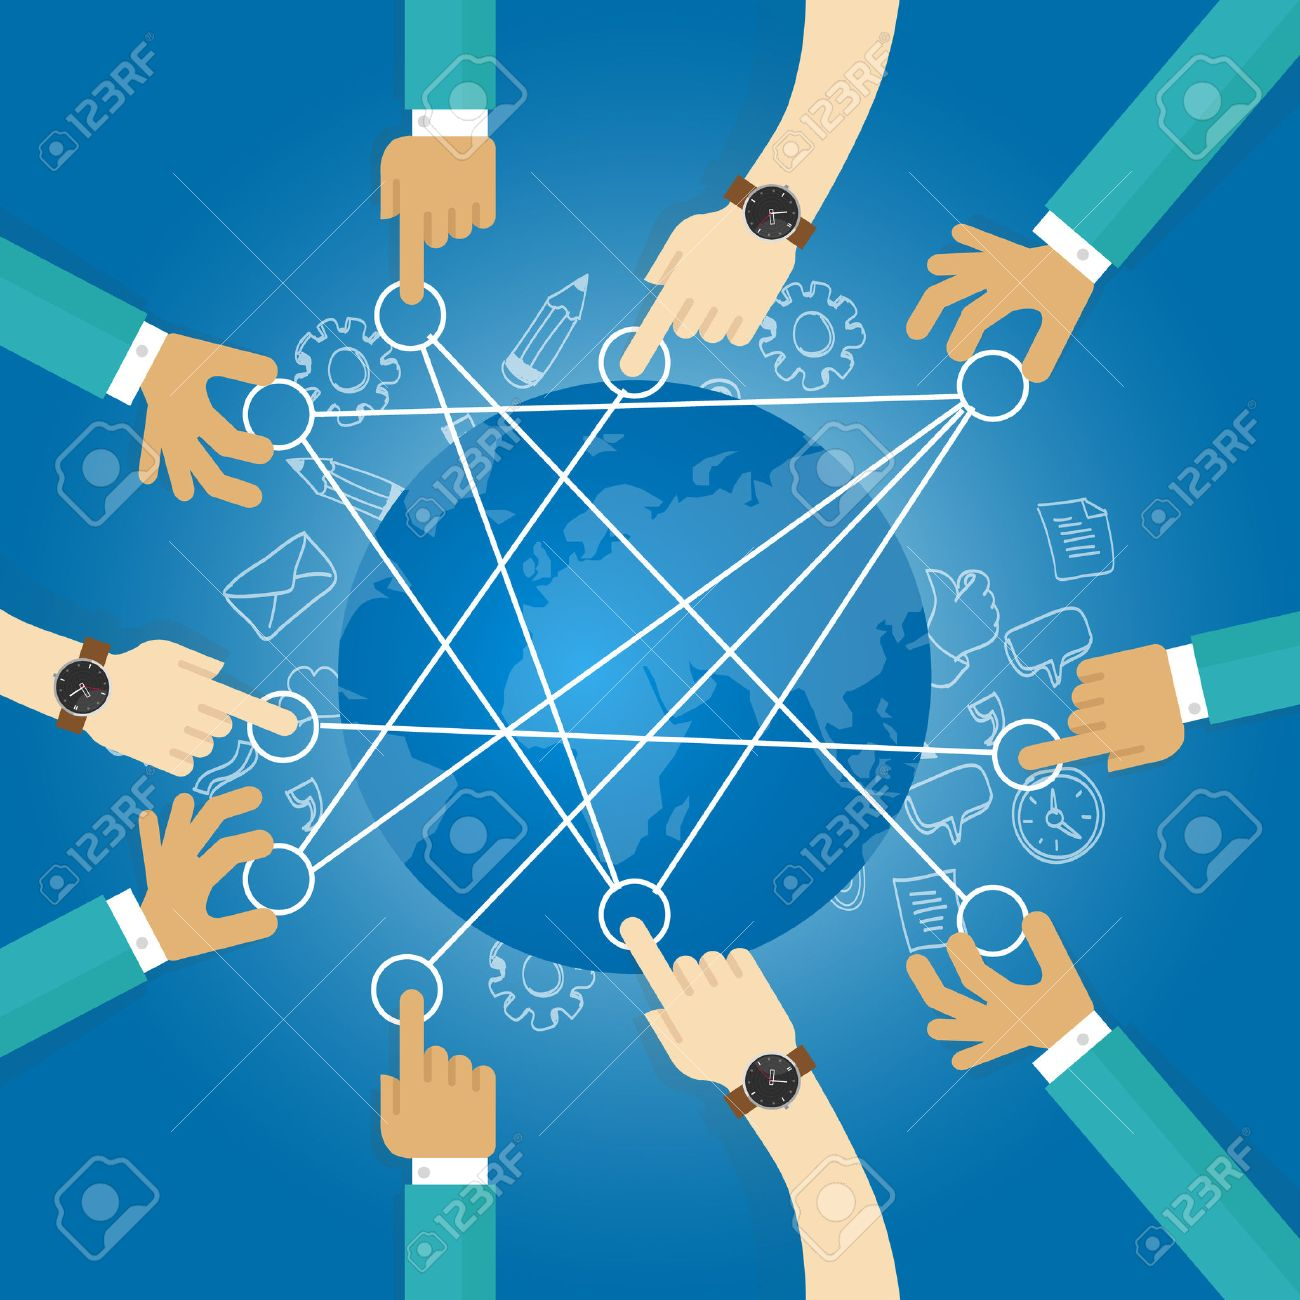 connecting world building transportation network globe collaboration team work interconnection infrastructure - 53582418